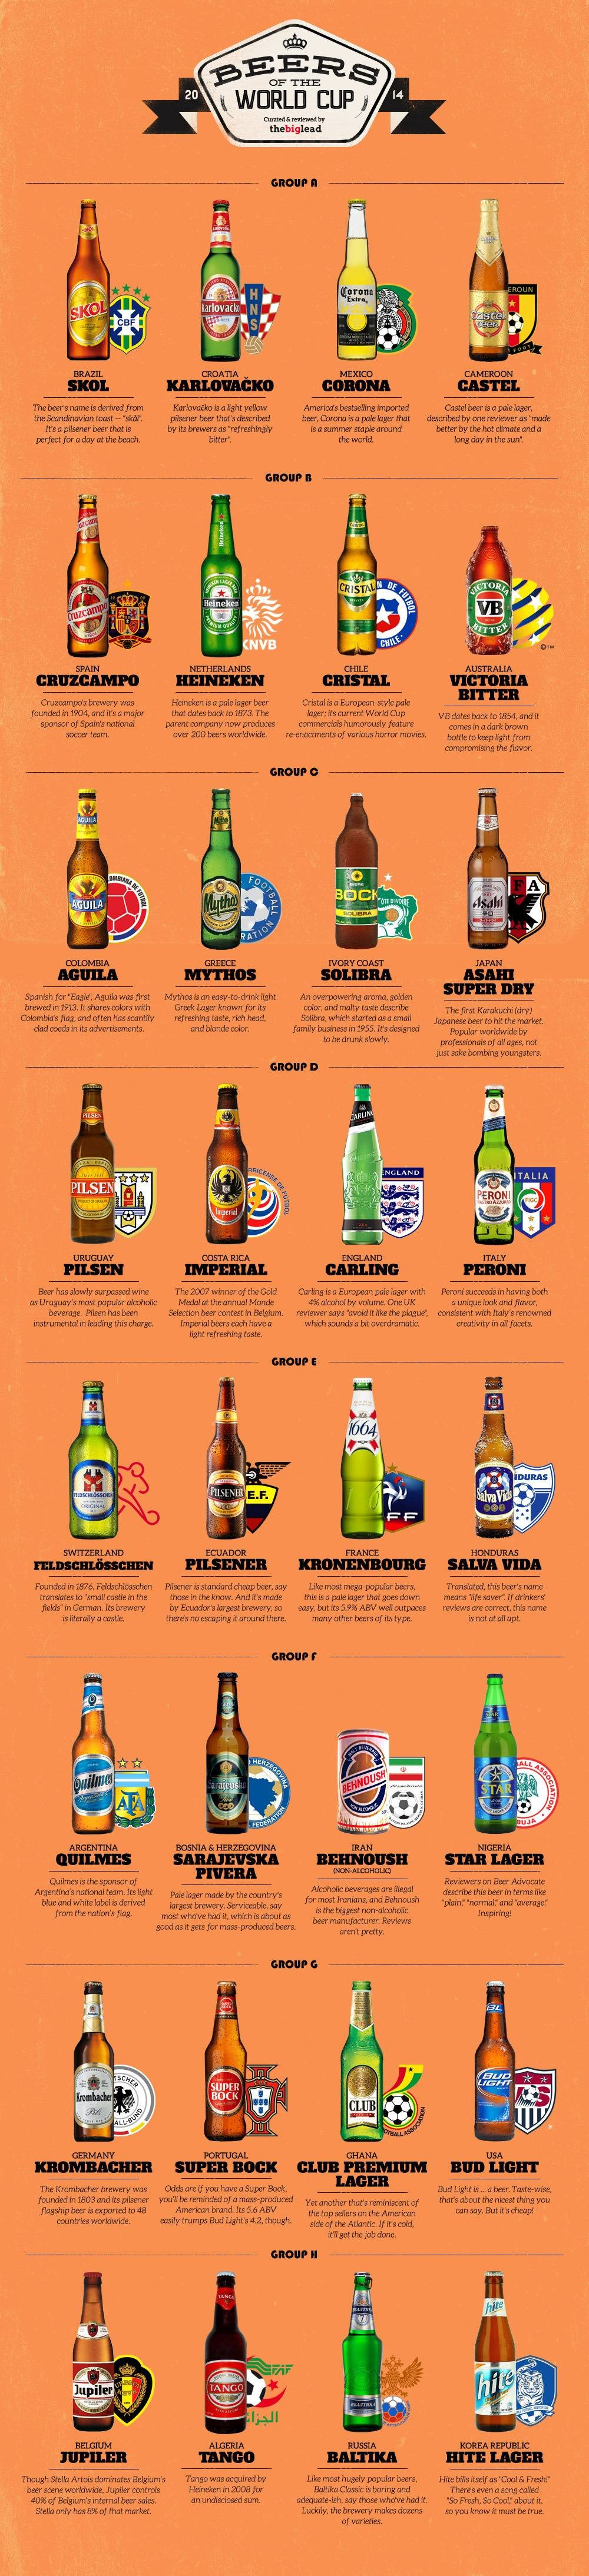 beers world cup